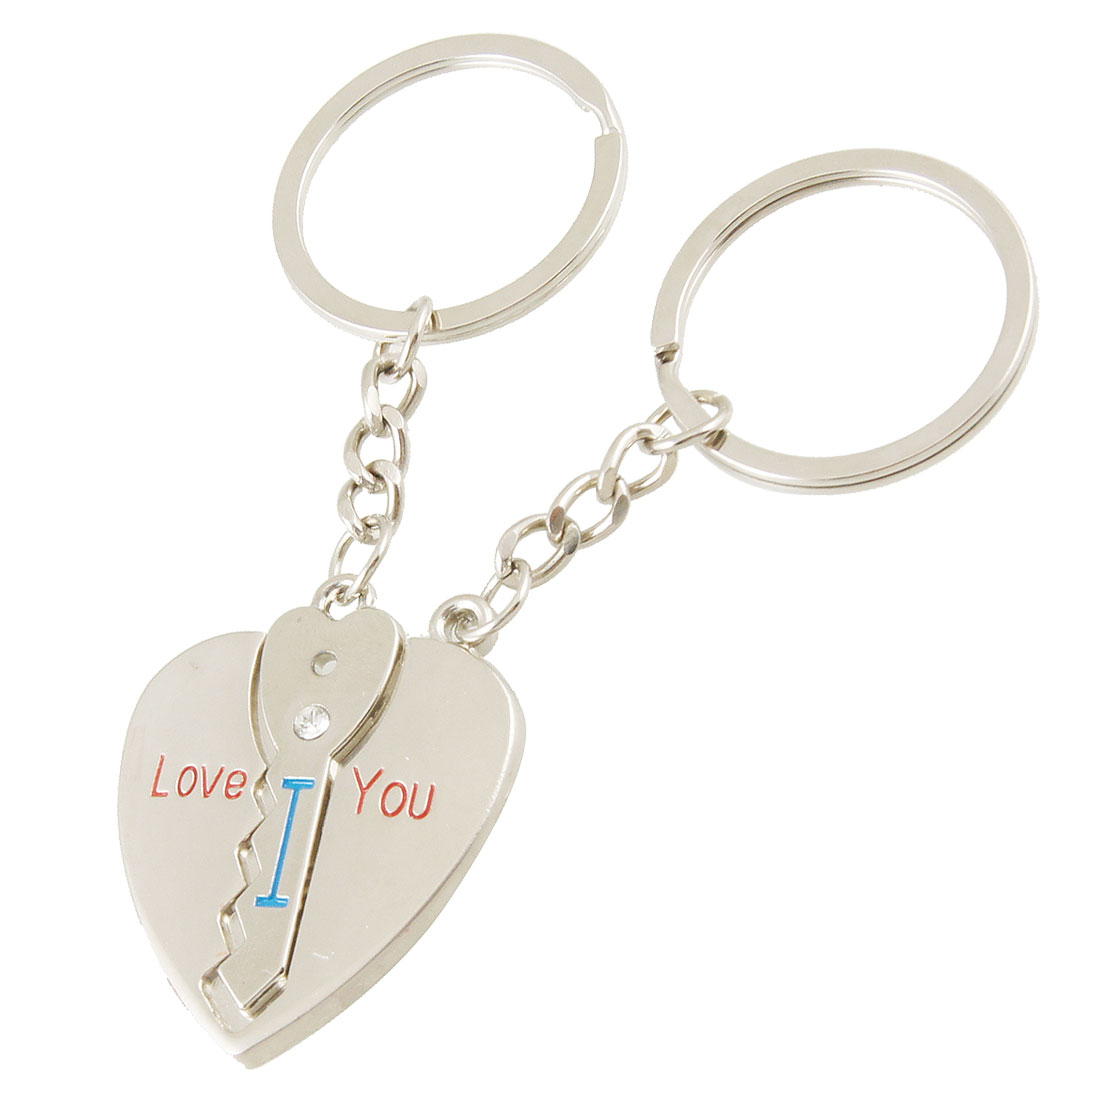 Couple Lover Gift Heart Key Pendant Metal Keychain Keyring 2 Pcs